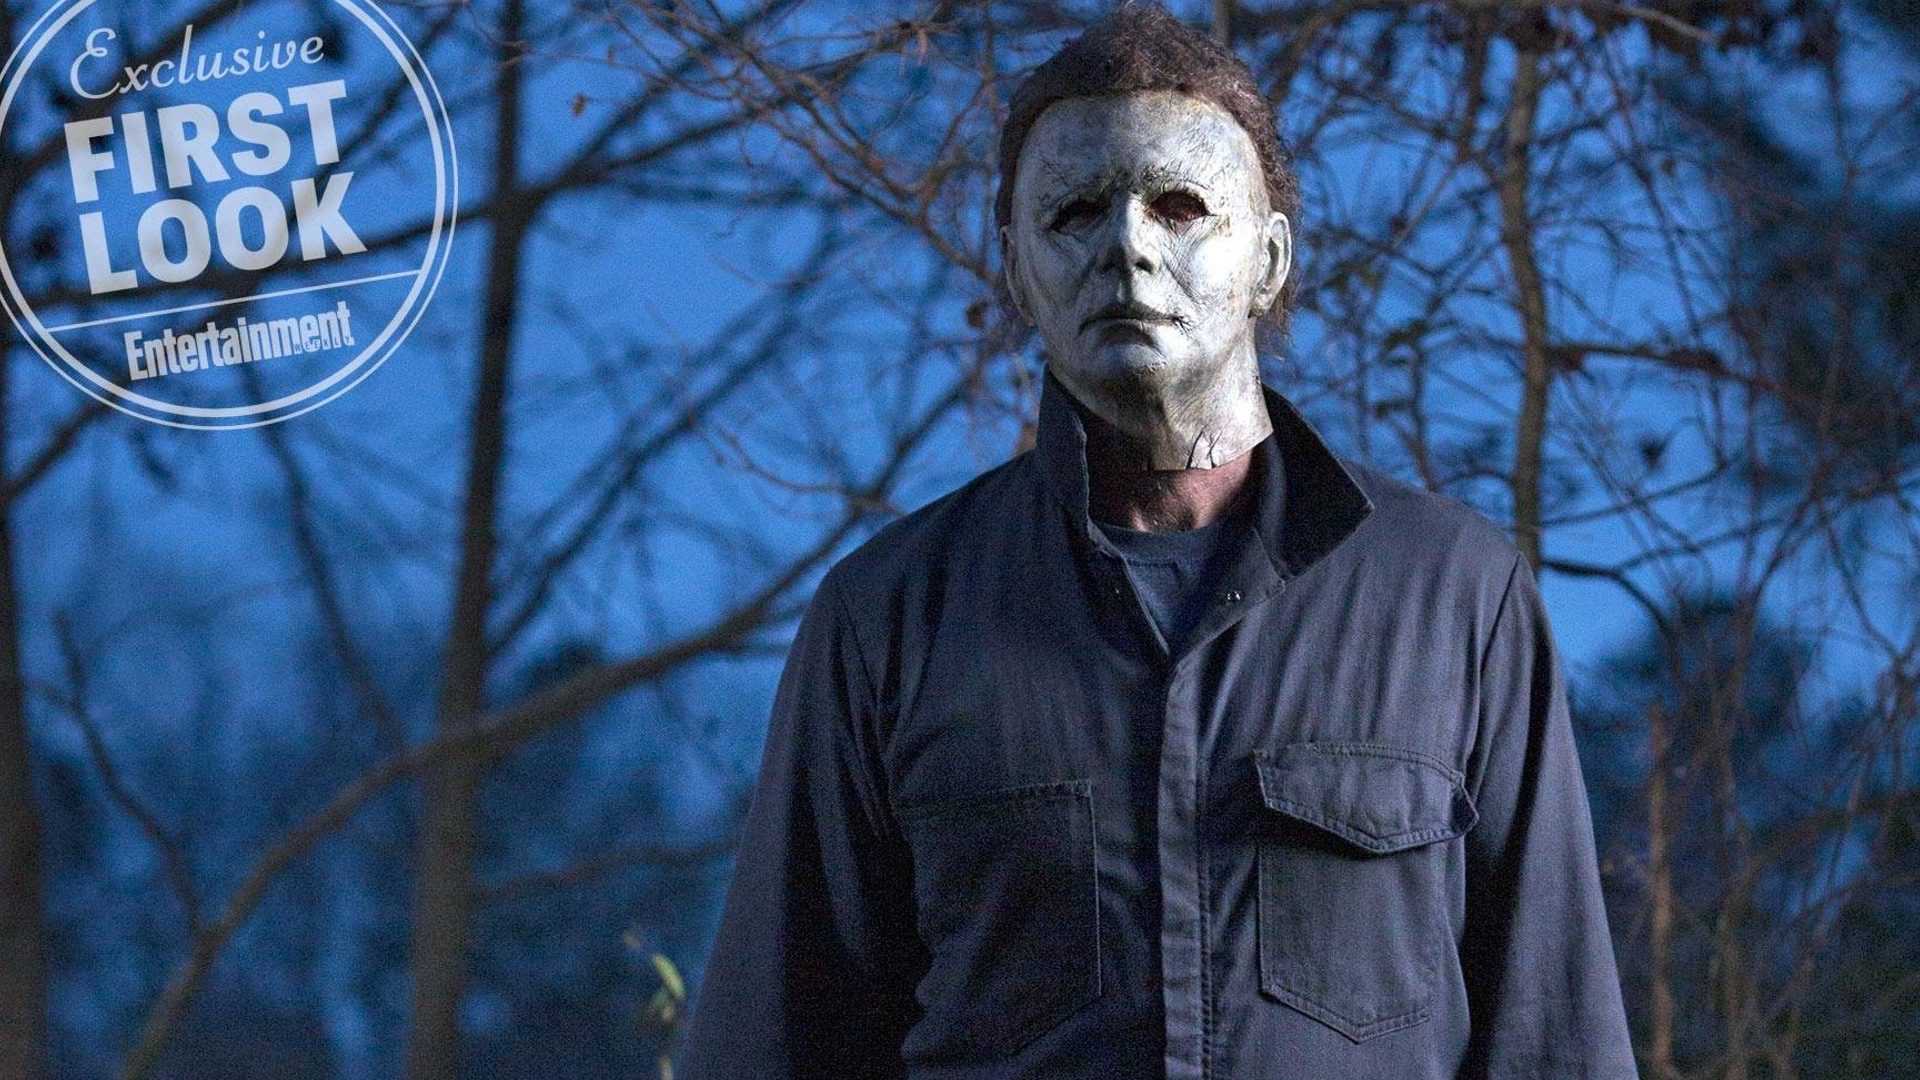 michael myers wont be a supernatural being that cant be